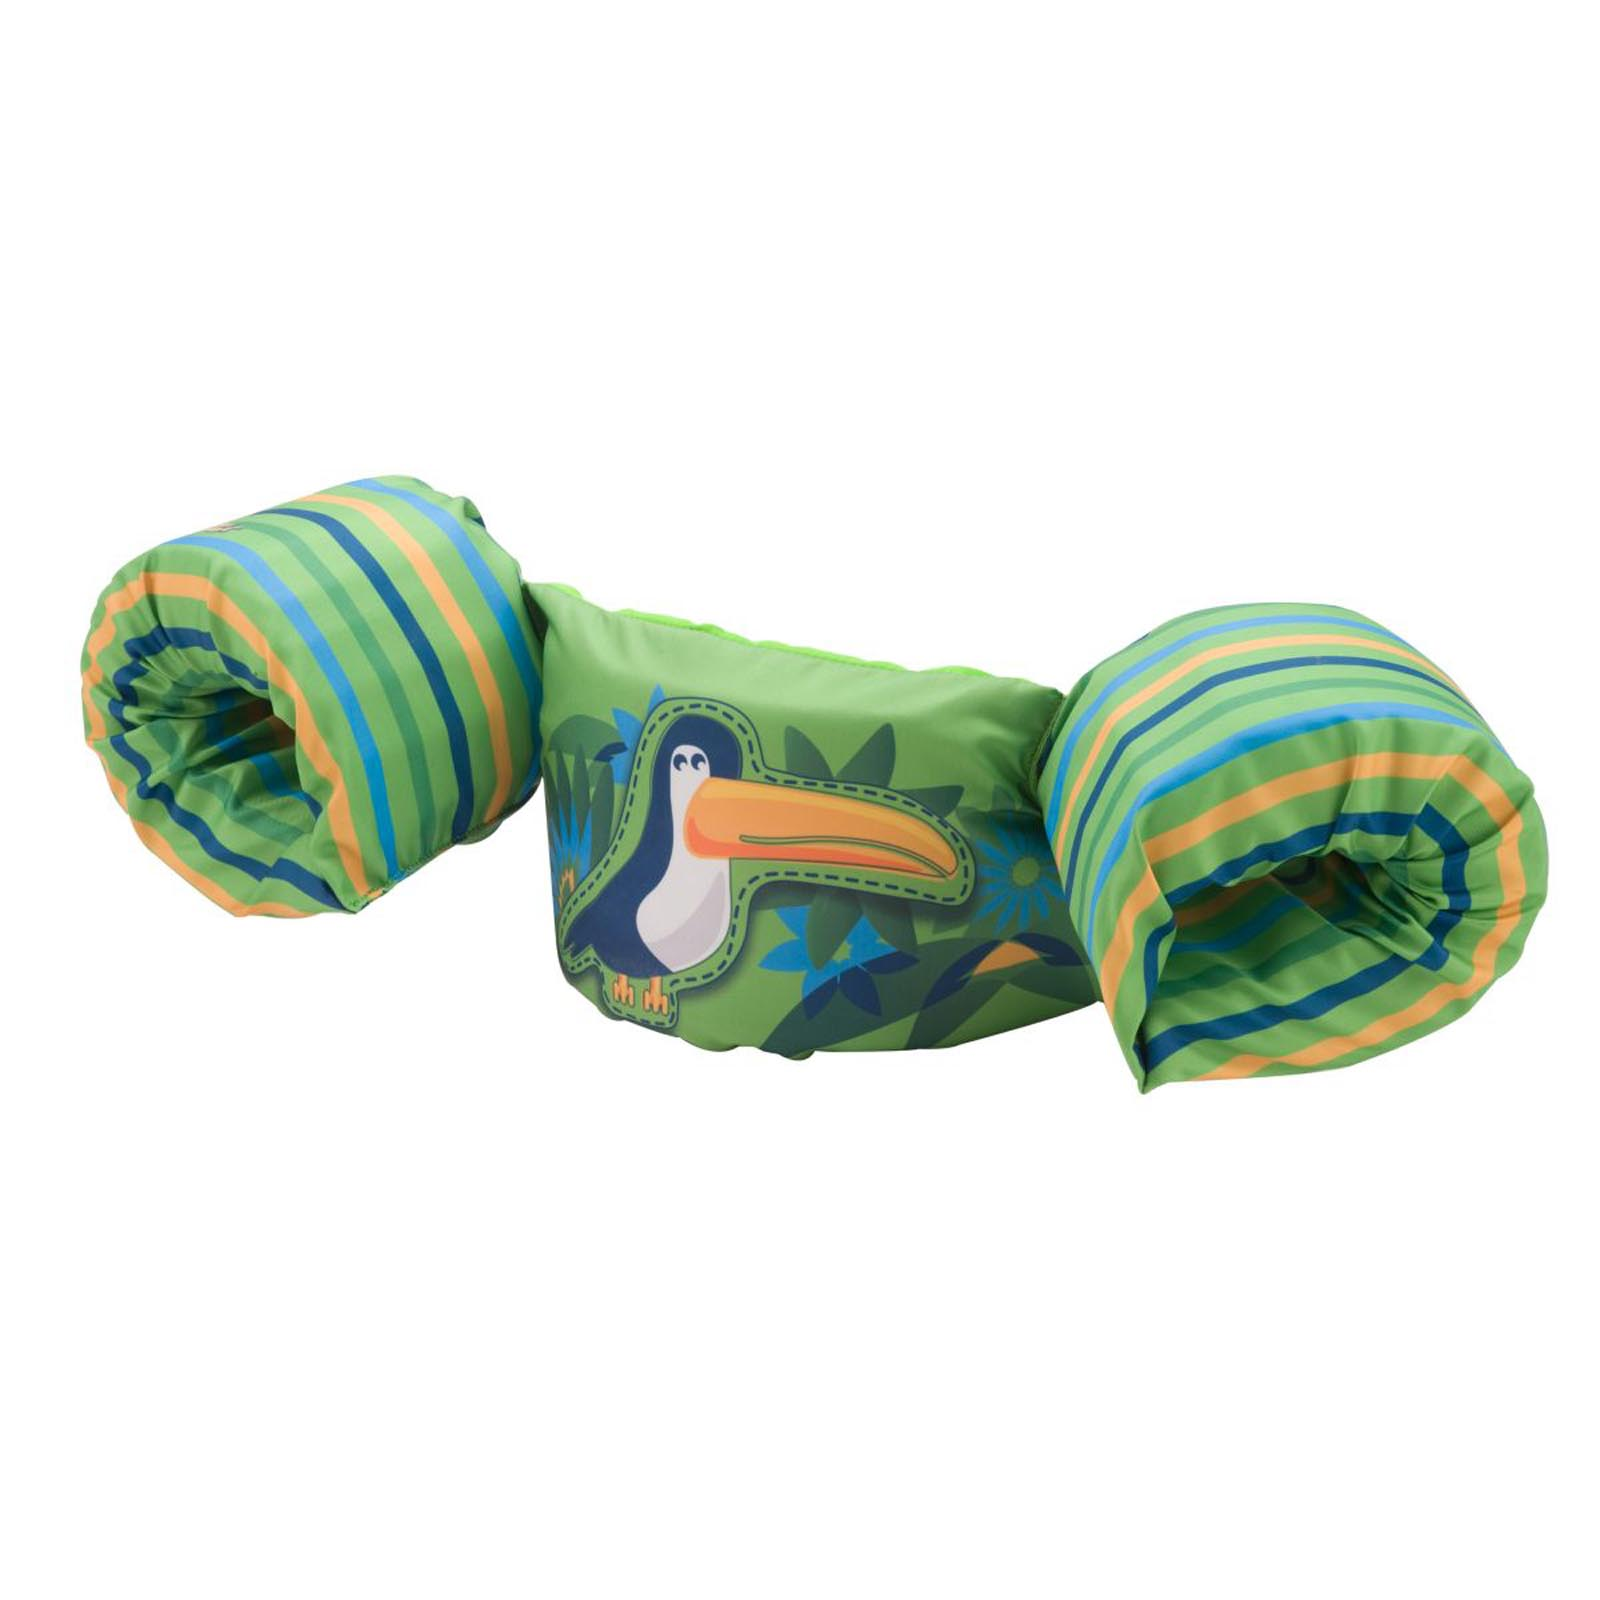 COLEMAN Stearns Deluxe Kids Puddle Jumper Swimming Life Jacket Vest | Toucan